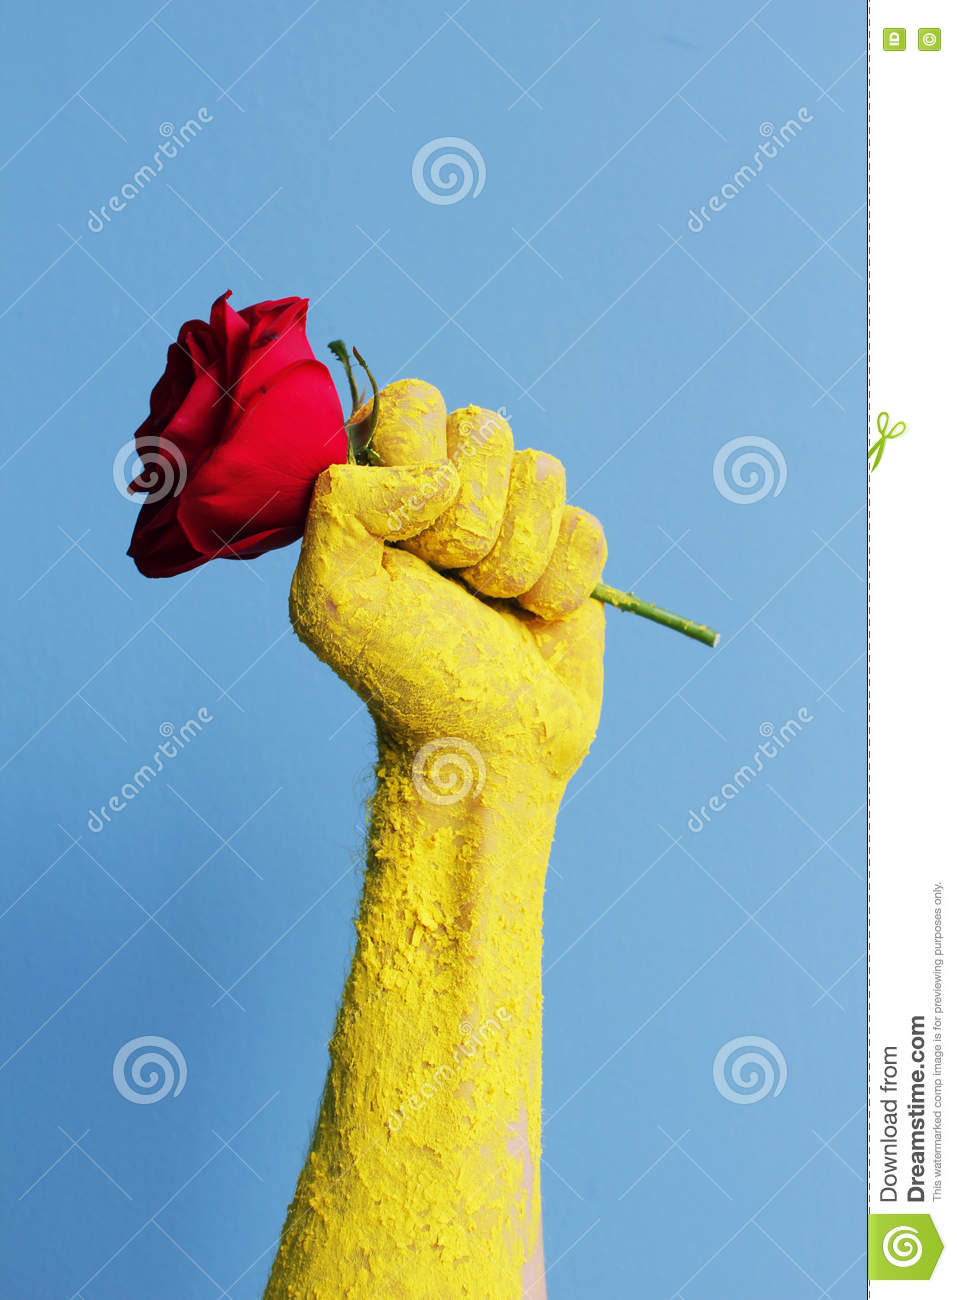 Fist red rose old propaganda poster shall not pass